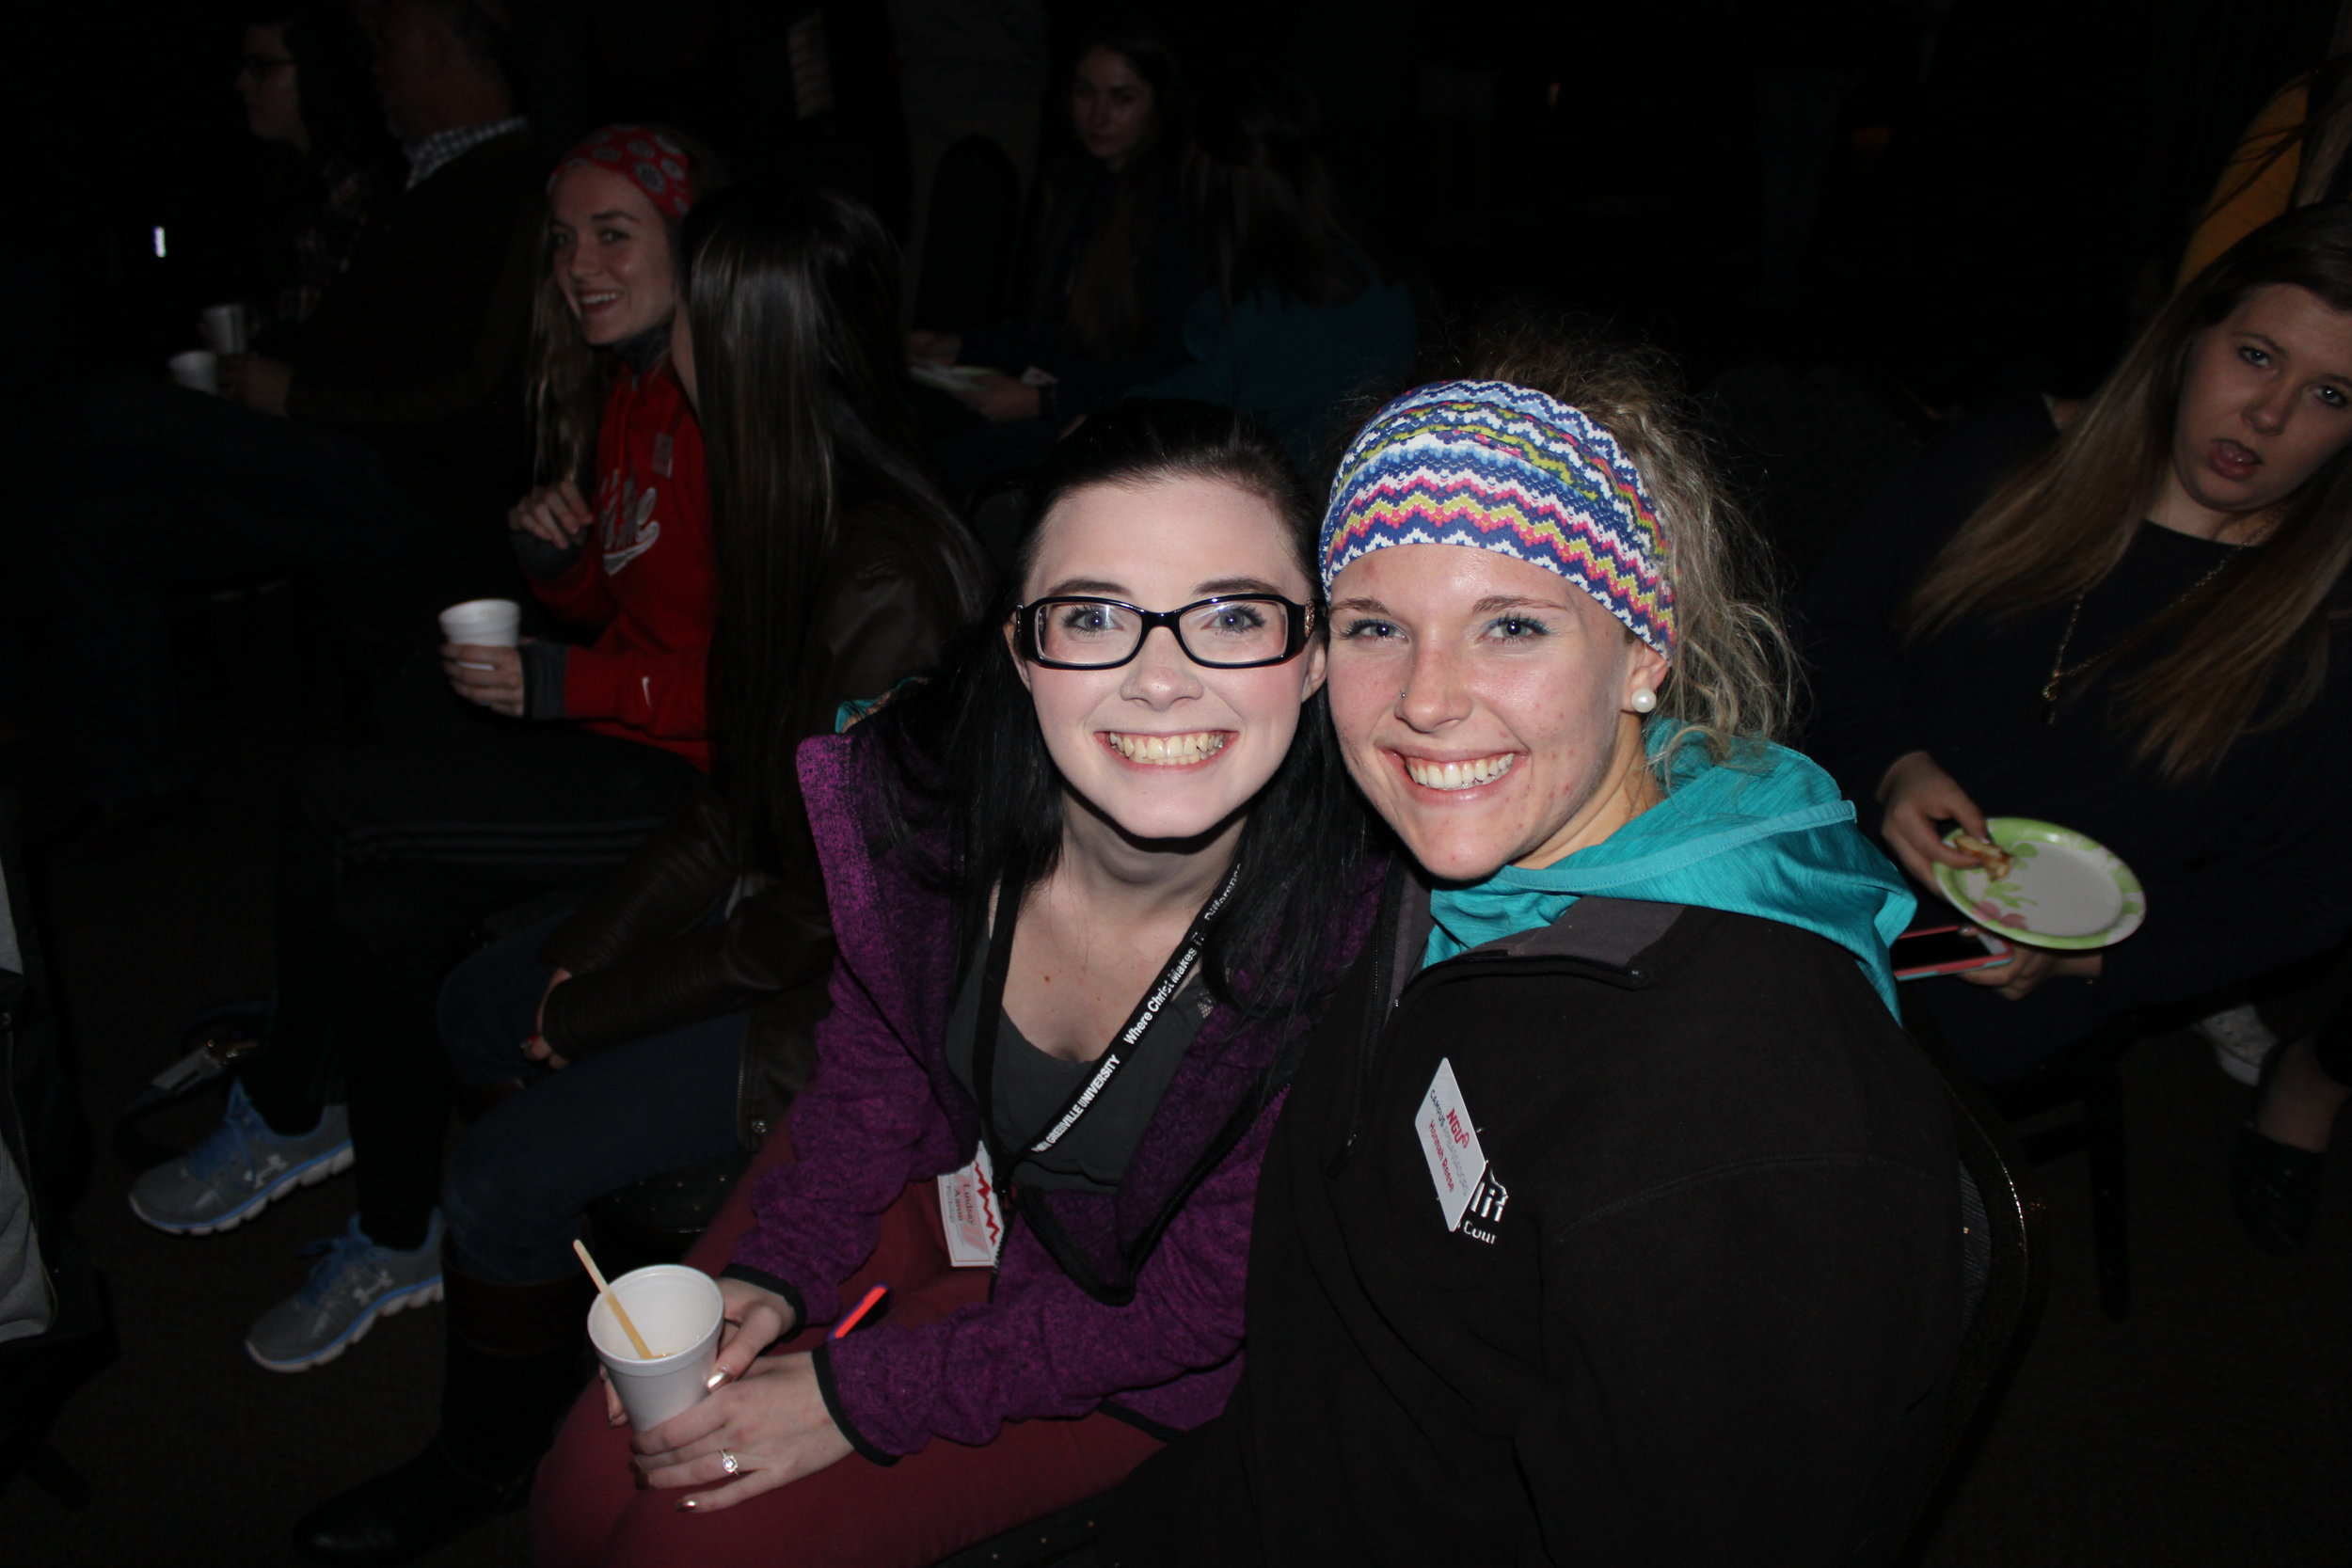 Hanna Reese and her overnight guest Lindsay Aaron enjoying the show.